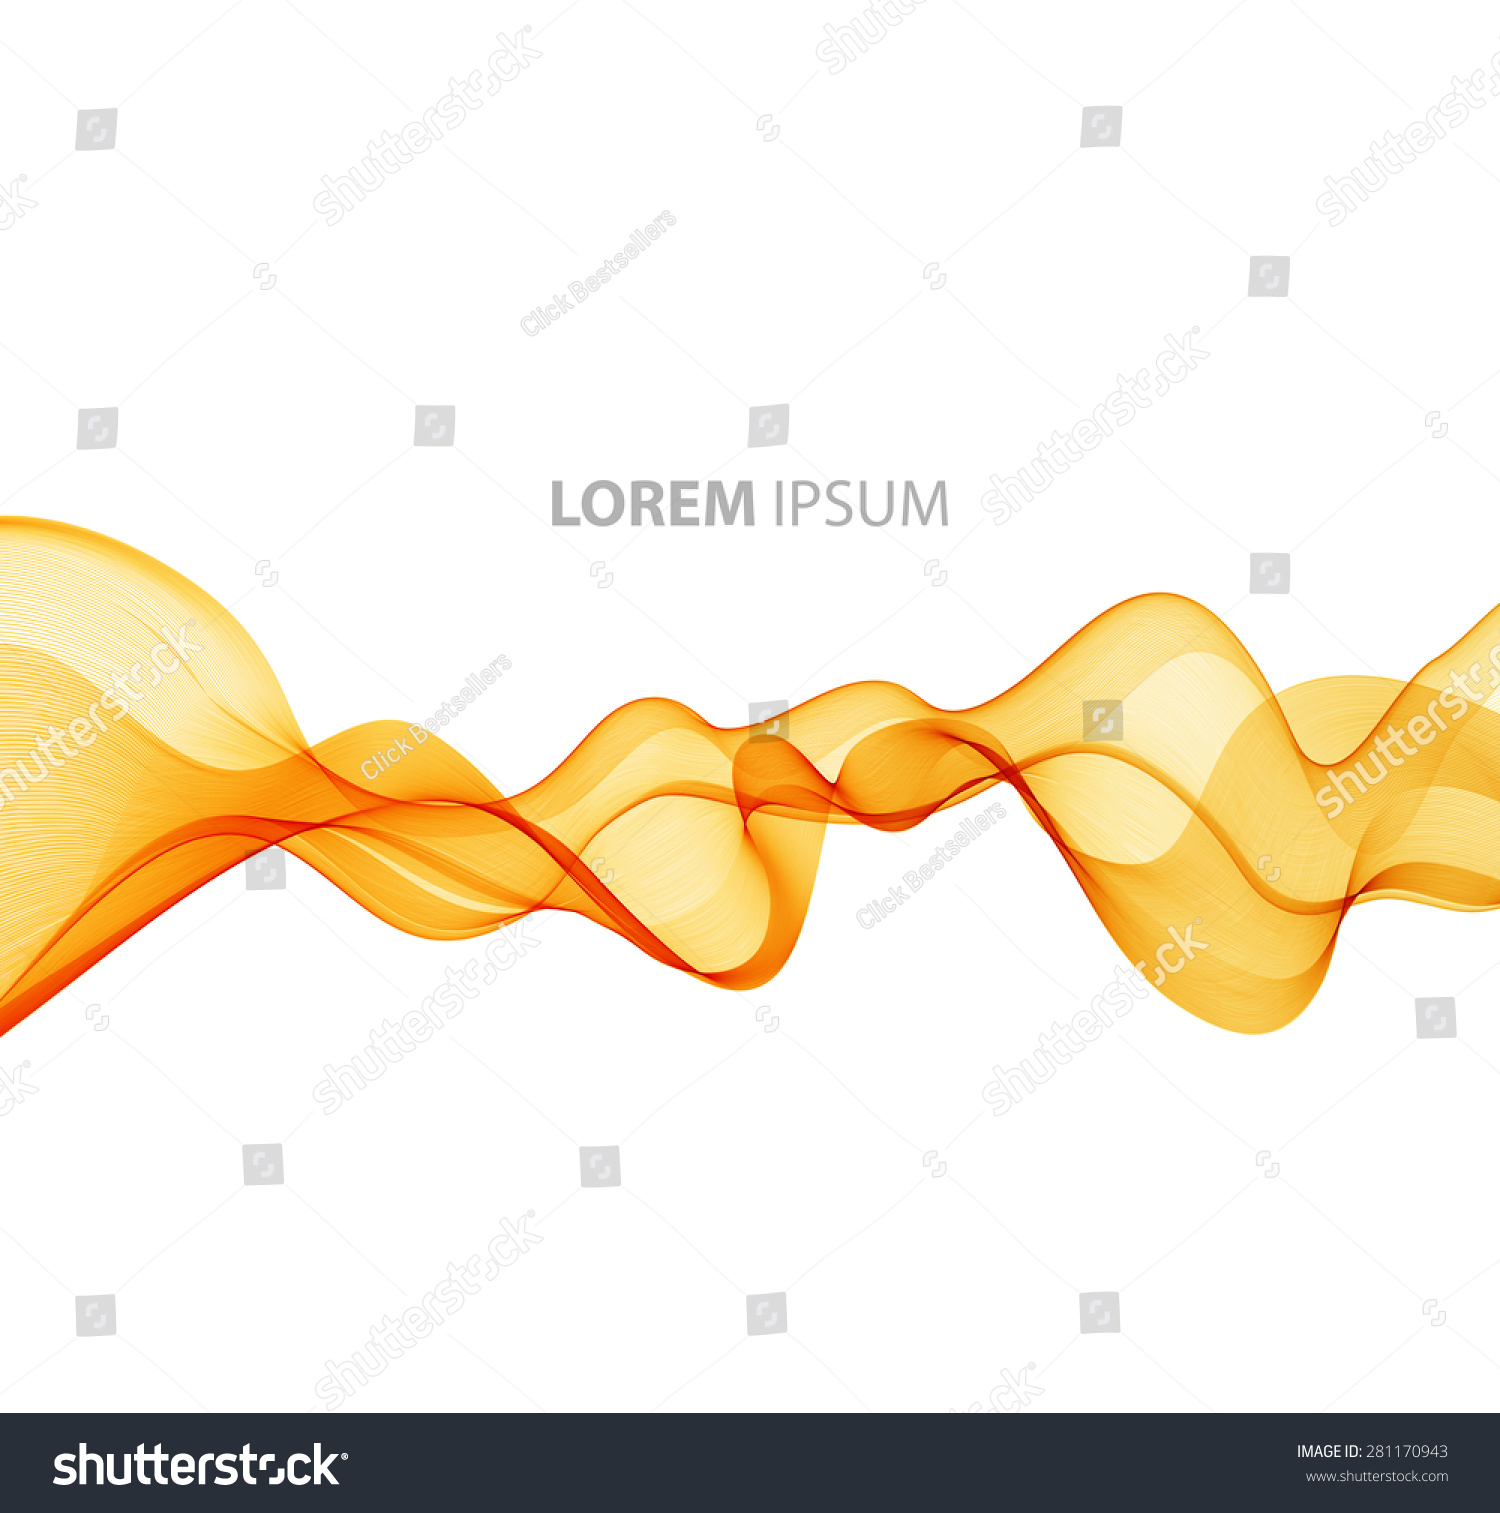 vector abstract orange curved lines background stock vector (royalty